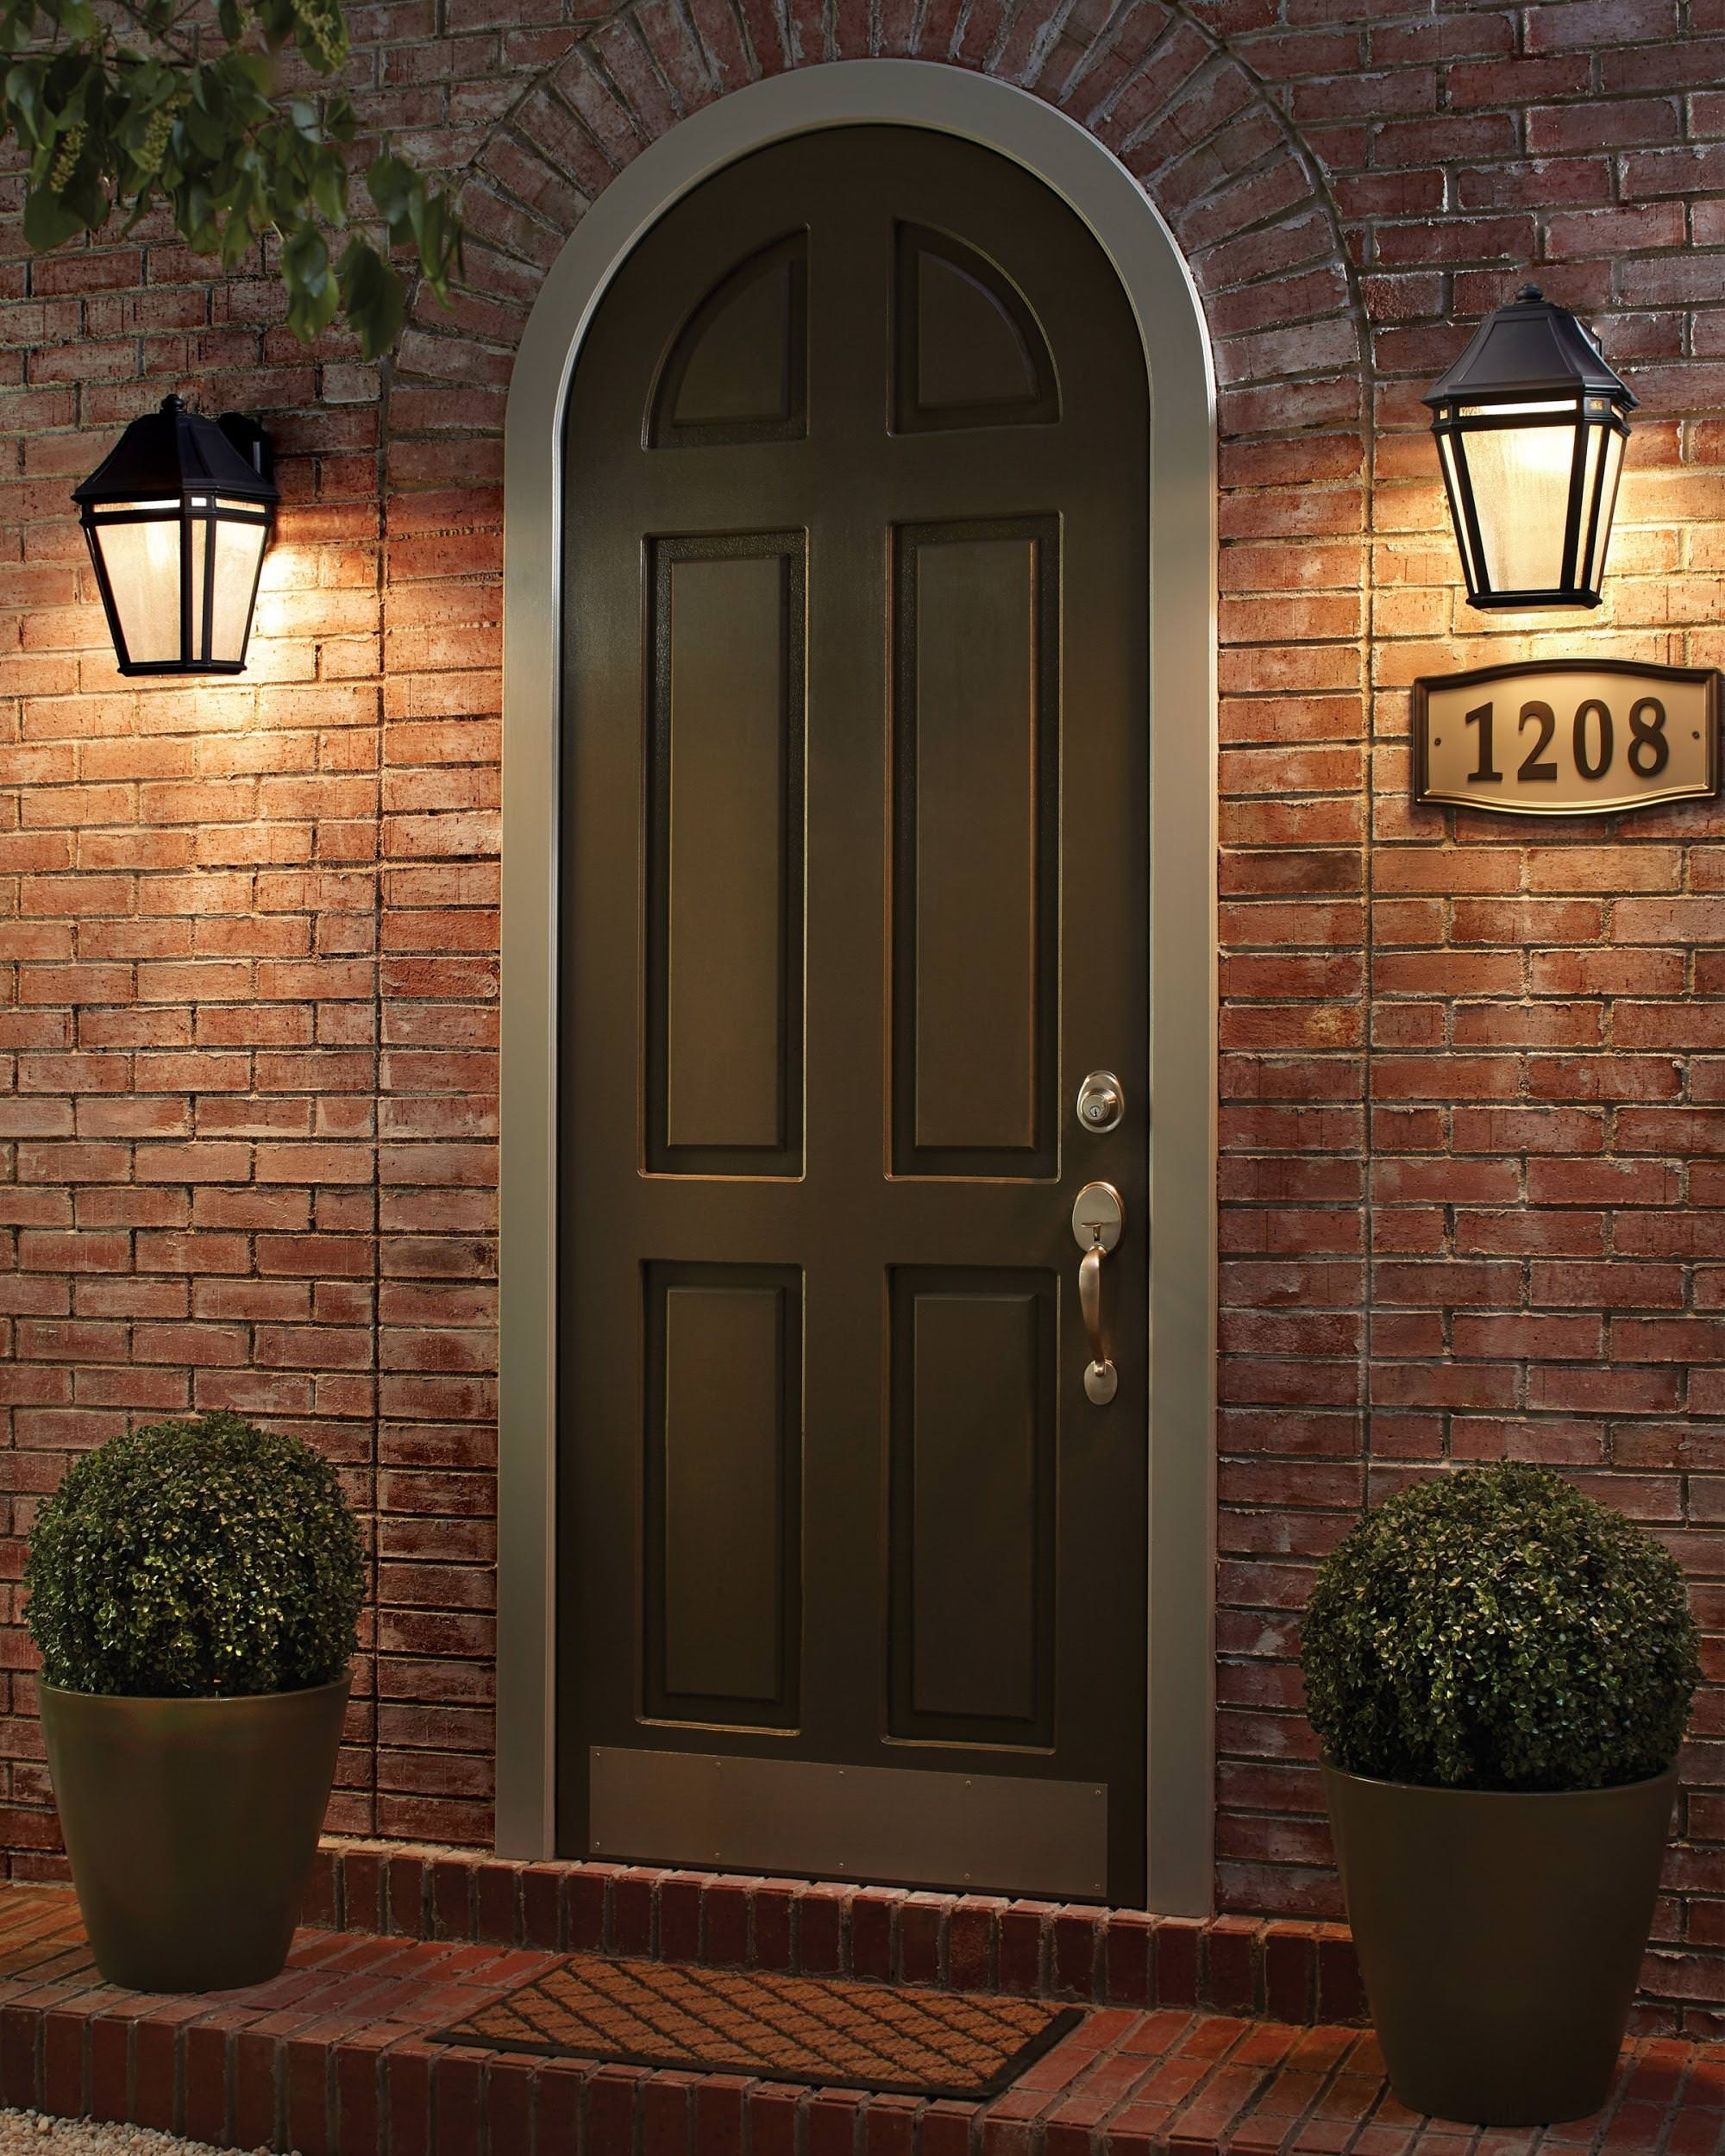 15 Different Outdoor Lighting Ideas For Your Home (All Types) pertaining to Outdoor Door Lanterns (Image 2 of 20)